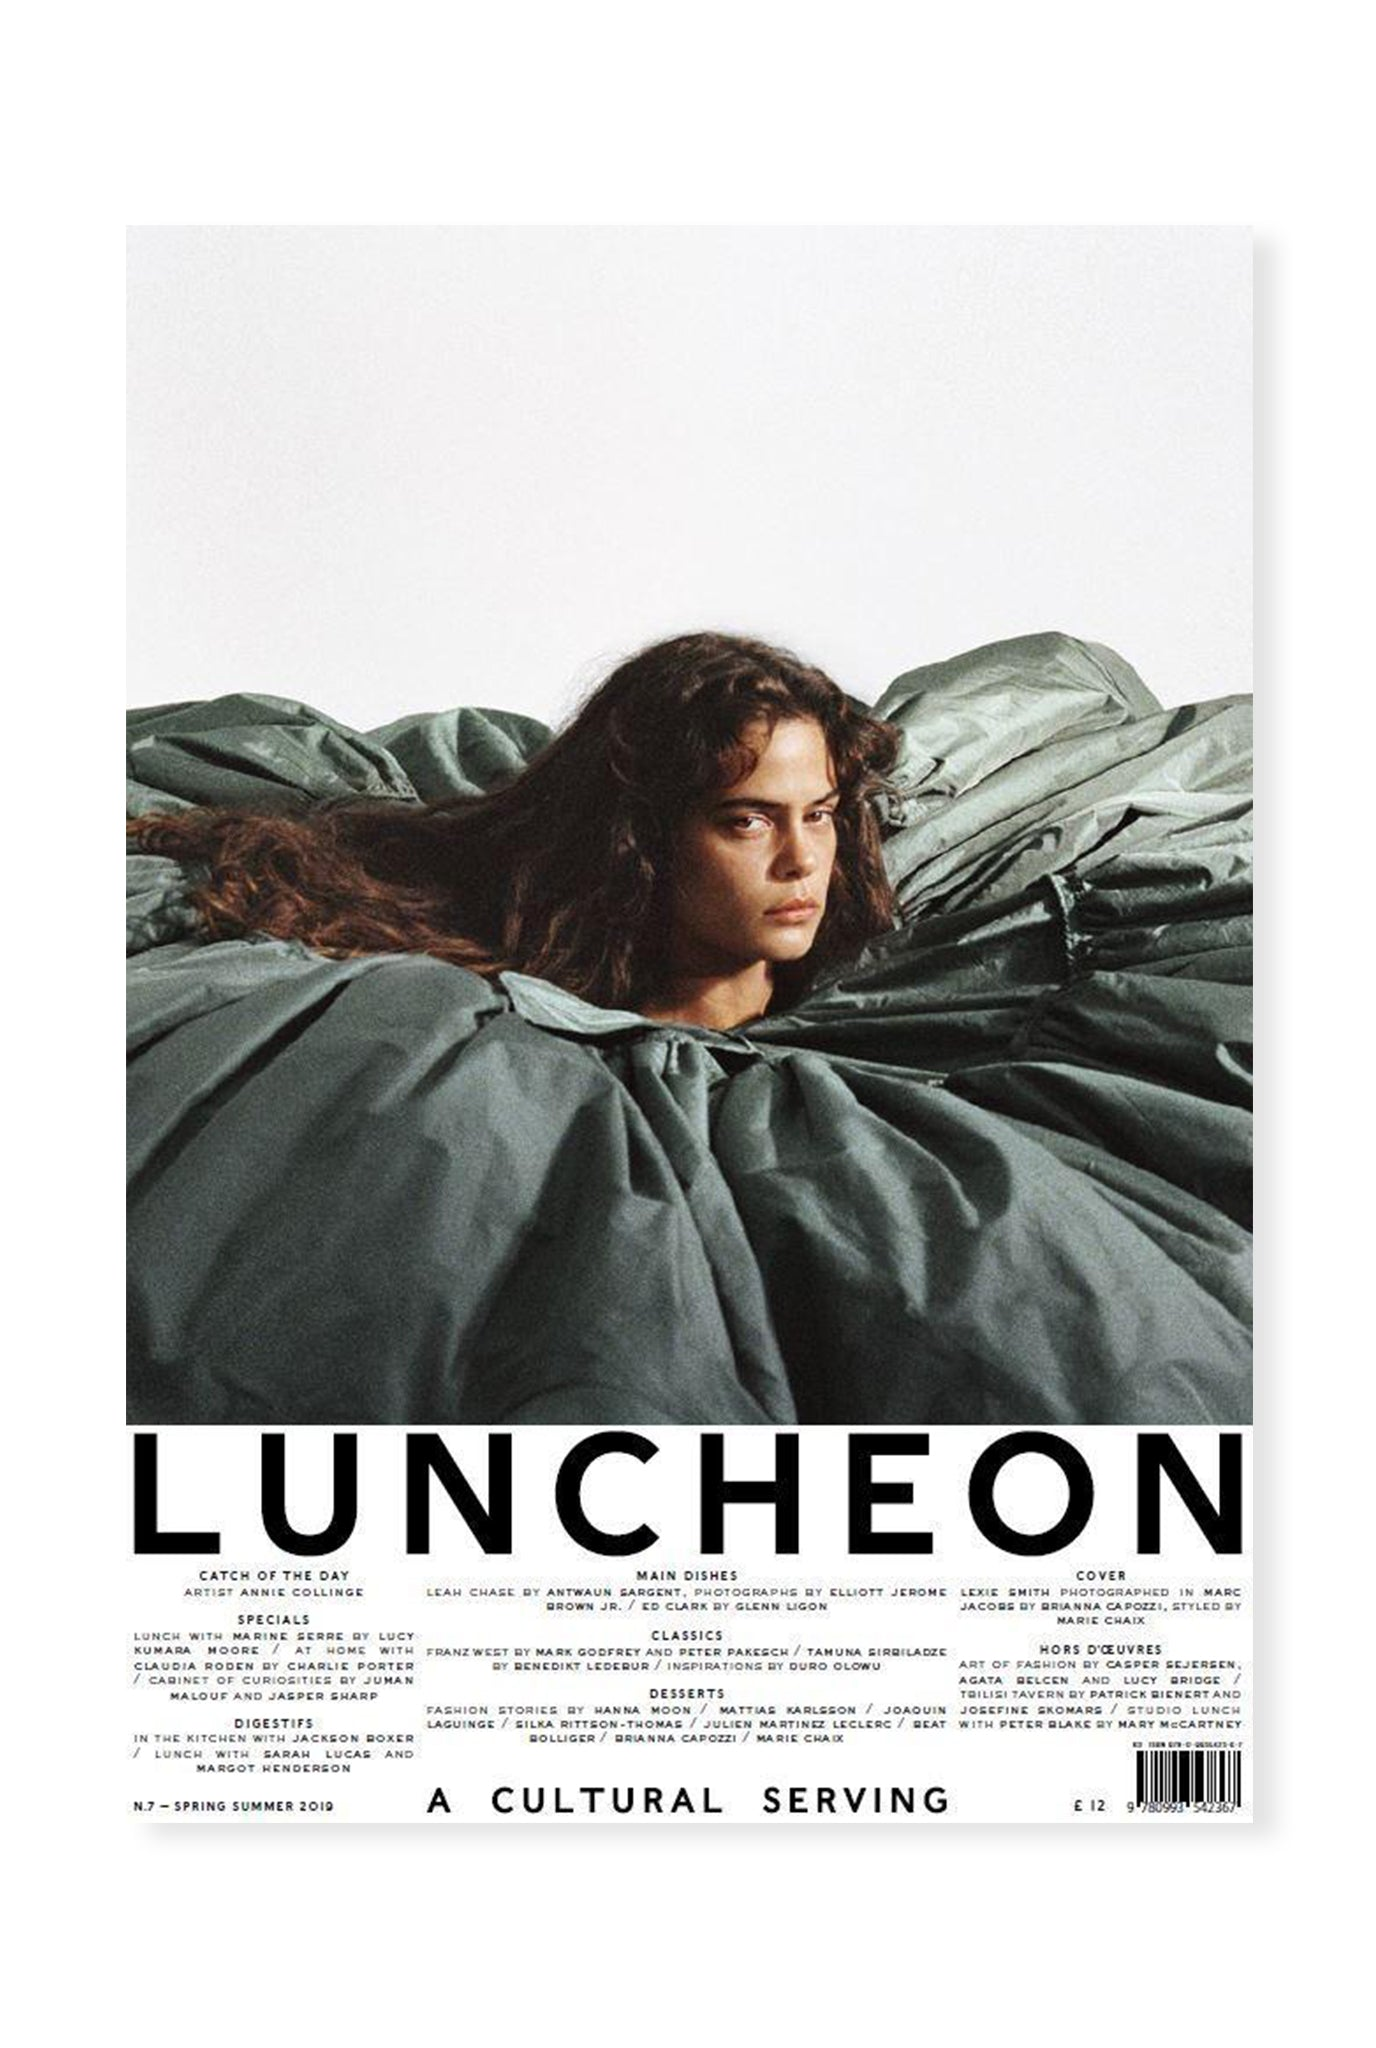 Luncheon Magazine, Issue 7